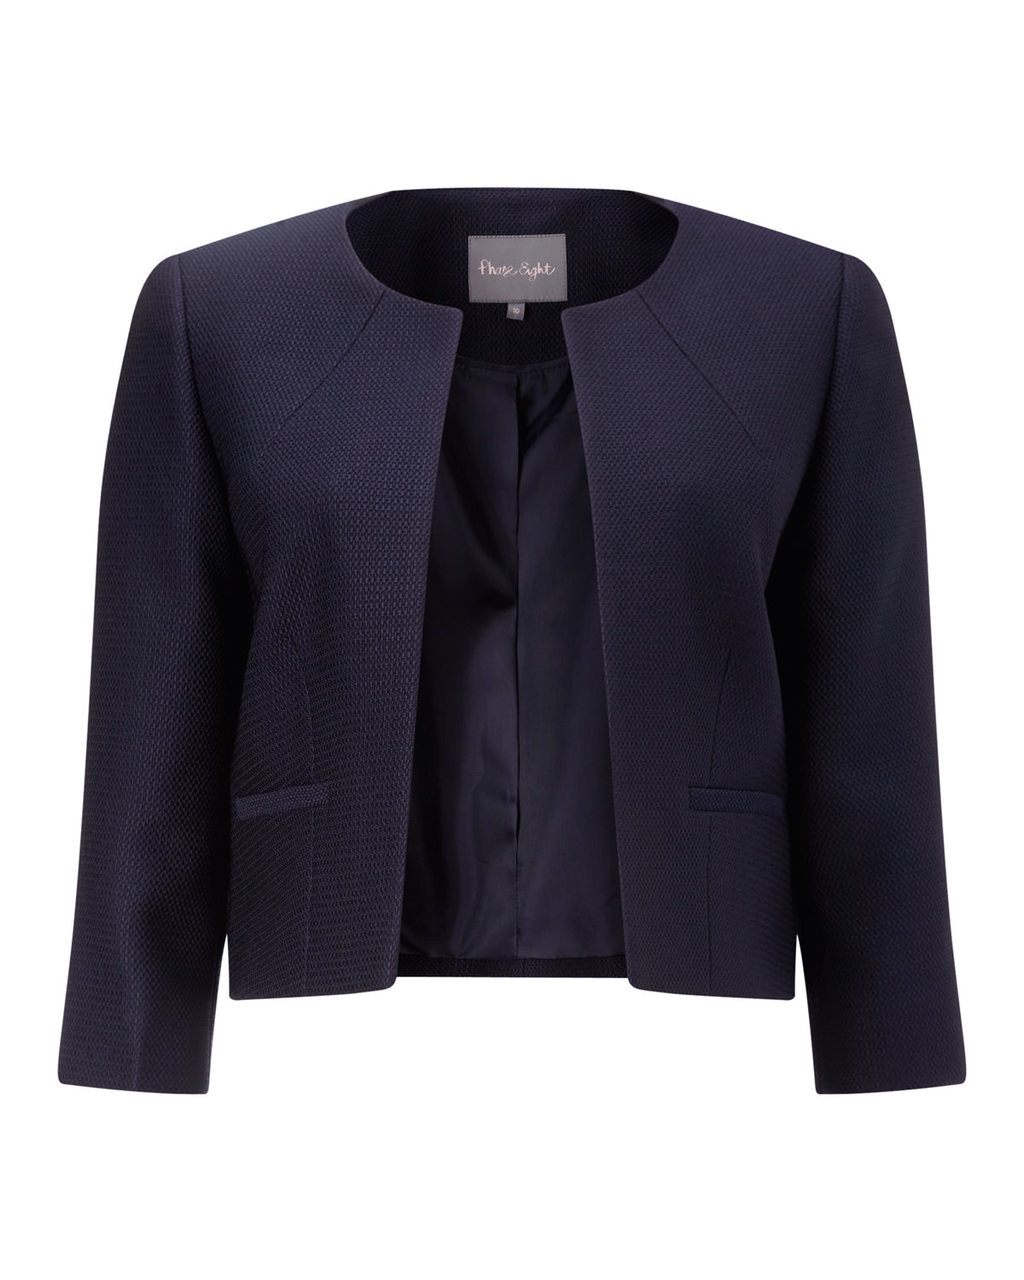 Valetta Jacket - pattern: plain; collar: round collar/collarless; style: boxy; predominant colour: navy; occasions: work; length: standard; fit: straight cut (boxy); fibres: polyester/polyamide - 100%; sleeve length: 3/4 length; sleeve style: standard; collar break: high; pattern type: fabric; texture group: woven light midweight; season: a/w 2015; wardrobe: investment